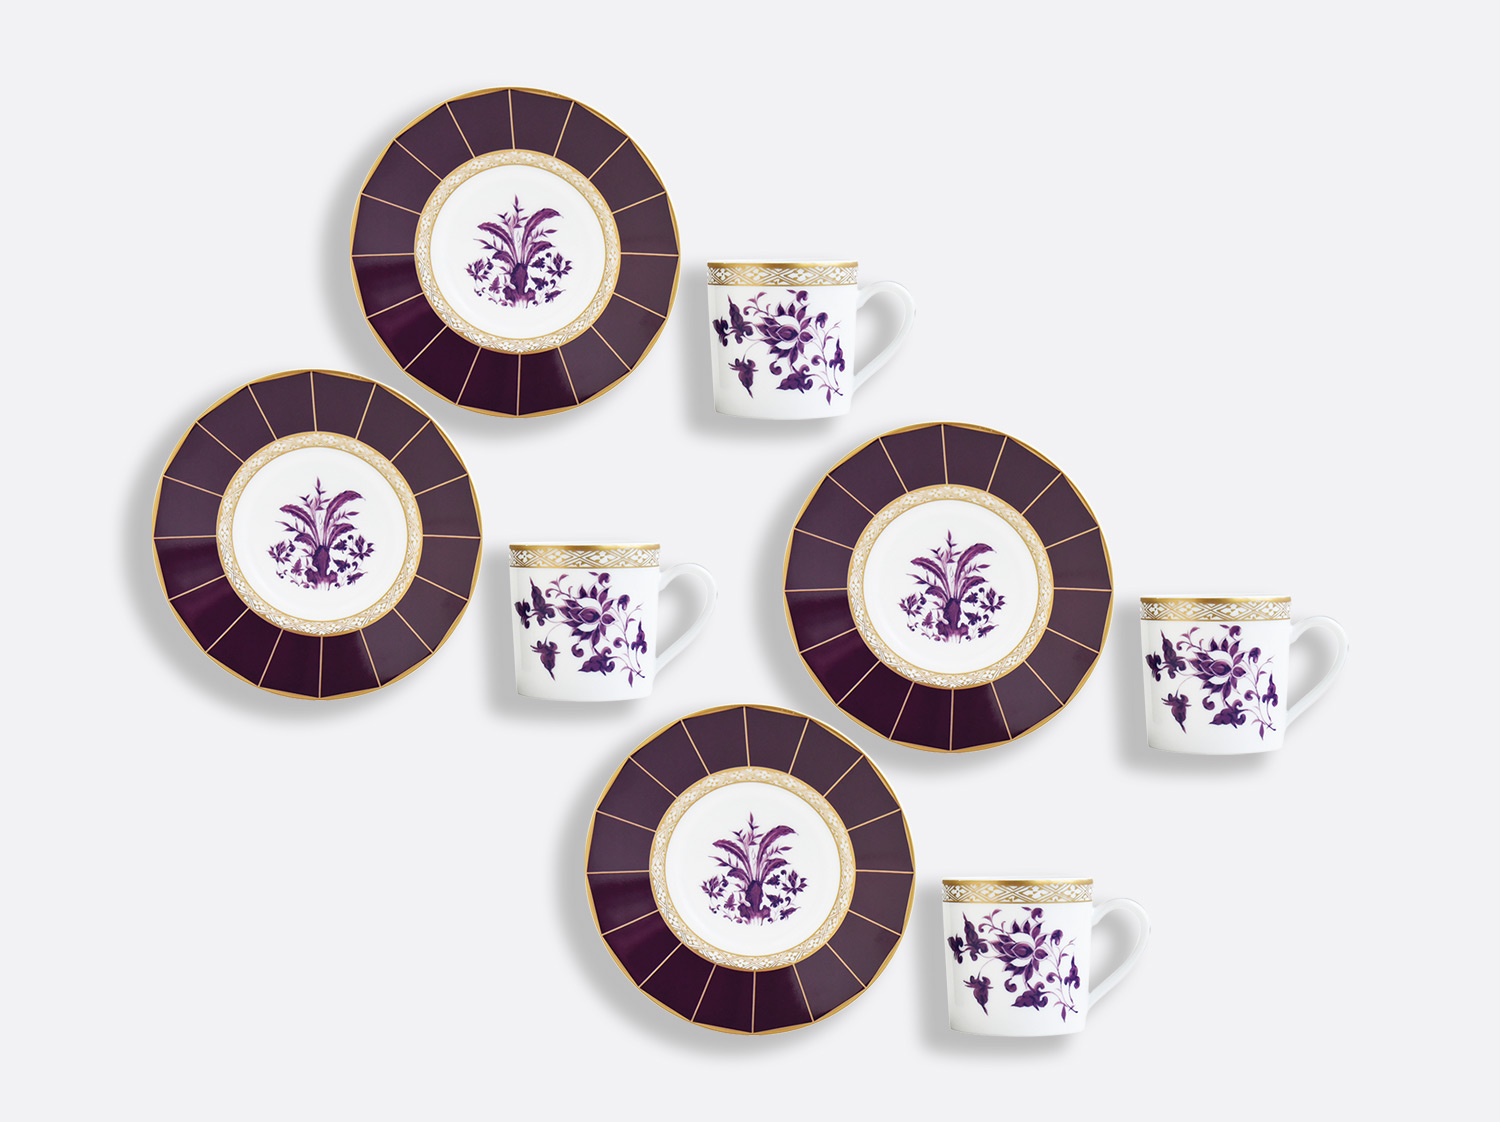 China Espresso cup and saucer gift box - 2.8 Oz - Set of 4 of the collection PRUNUS | Bernardaud